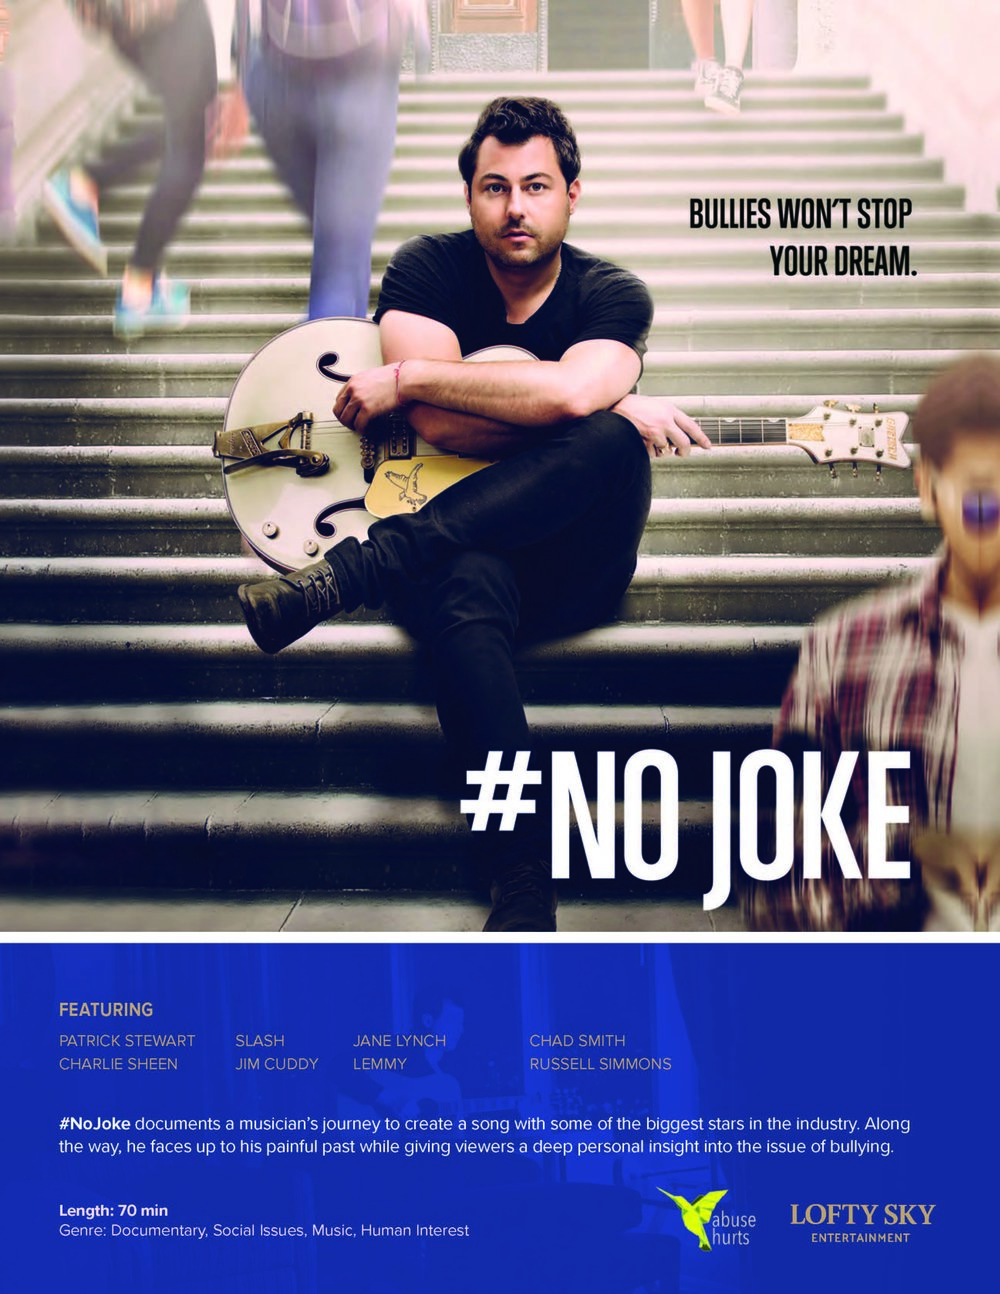 Exciting #announcement coming soon about @NoJokeFilm!Be sure to follow for updates you won't want to miss. #NoJoke #NoJokeFilm #documentary -